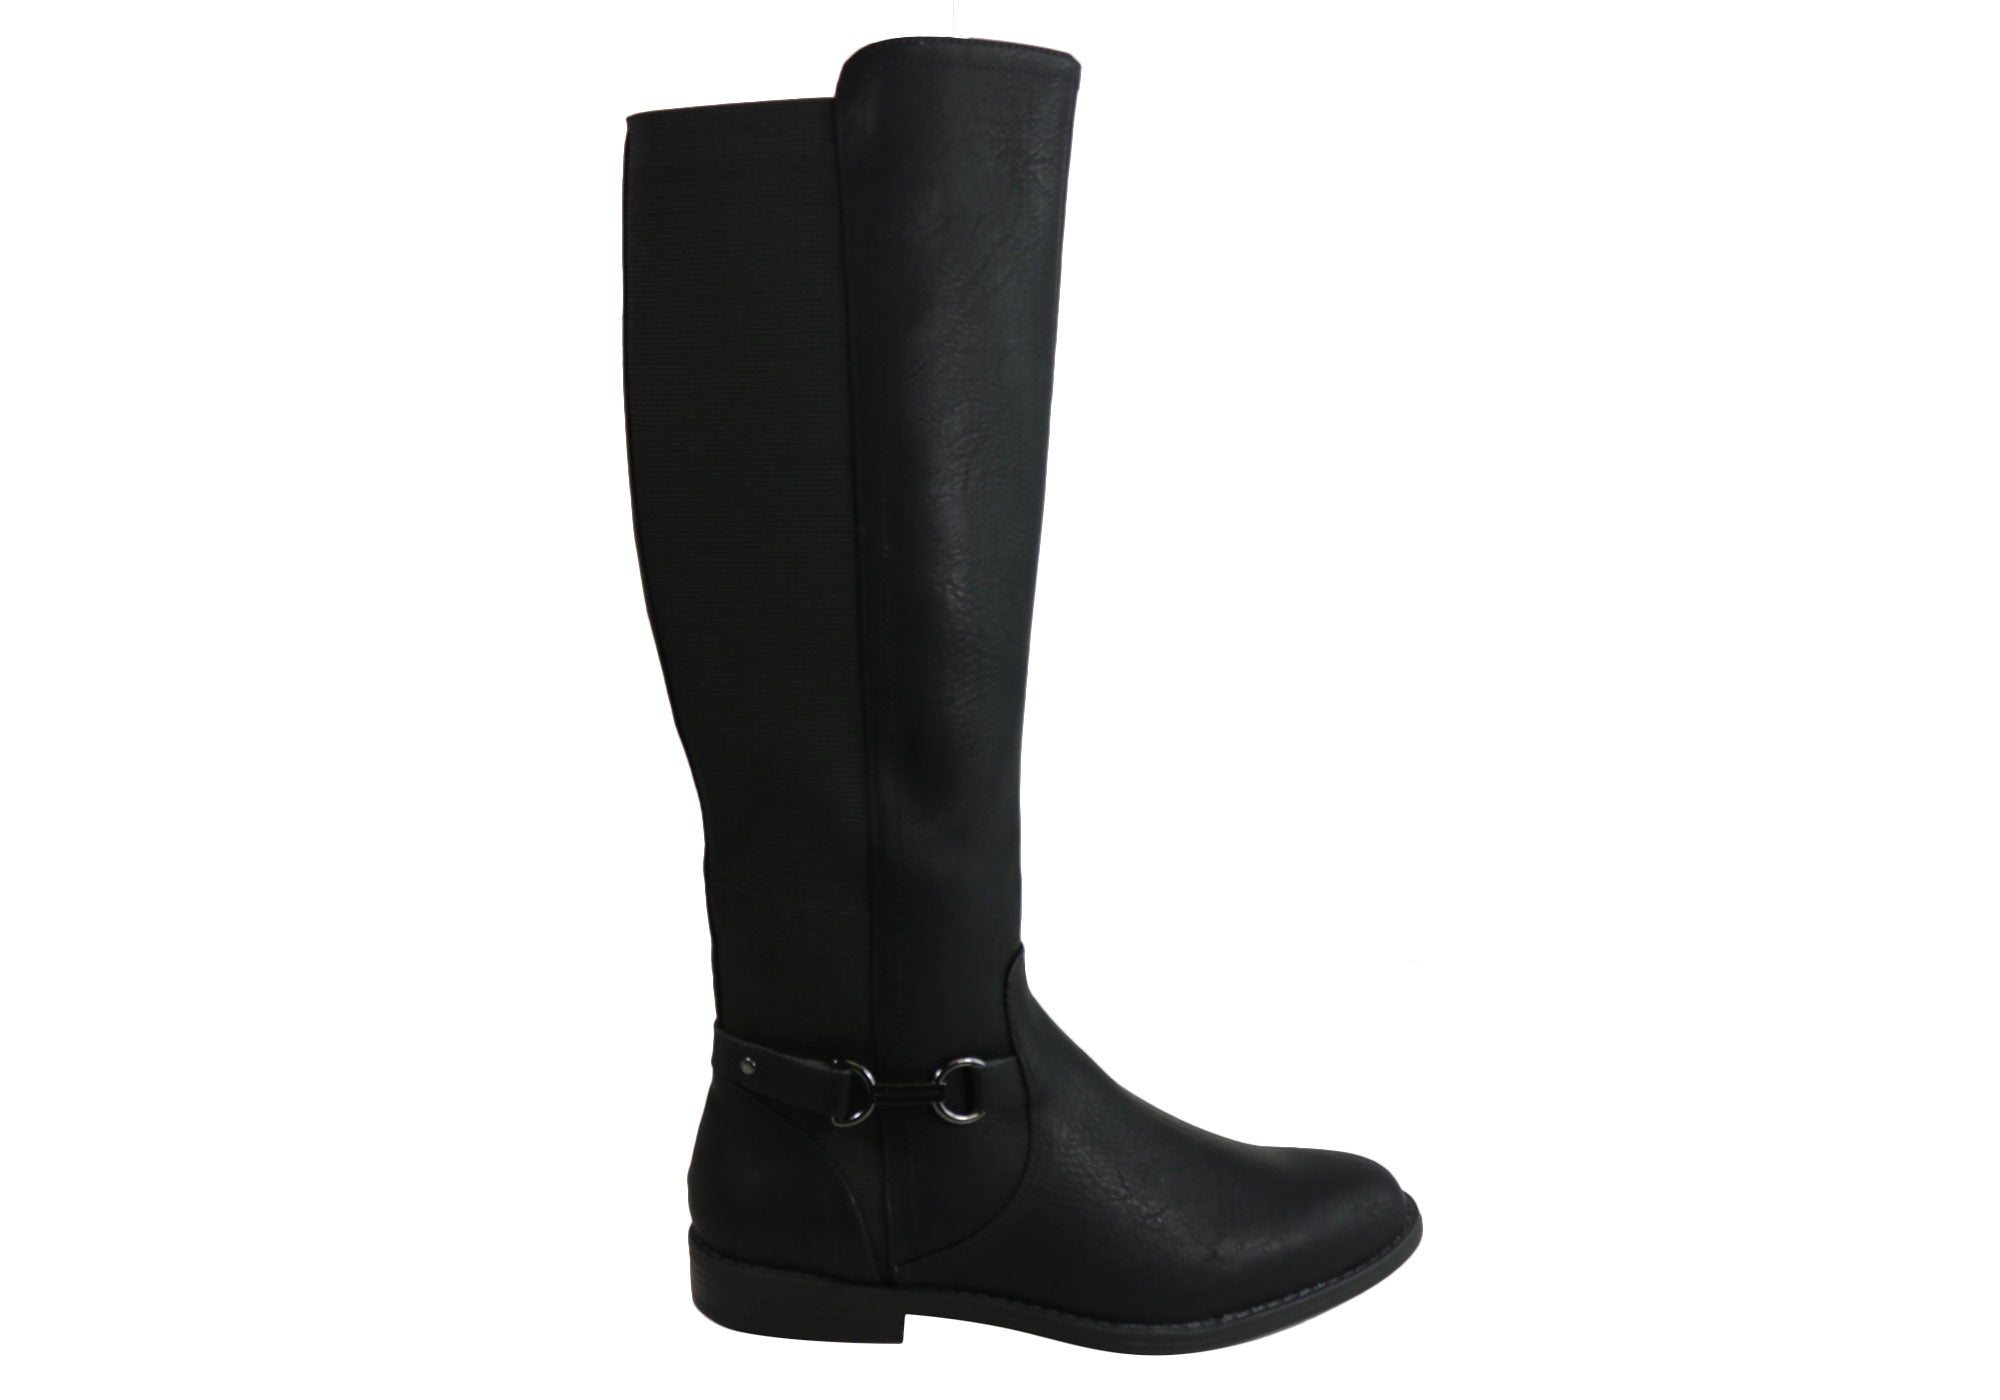 13999516733 Home Bellissimo Rebel 2 Womens Comfort Knee High Wide Calf Boots. Black   Black  Black